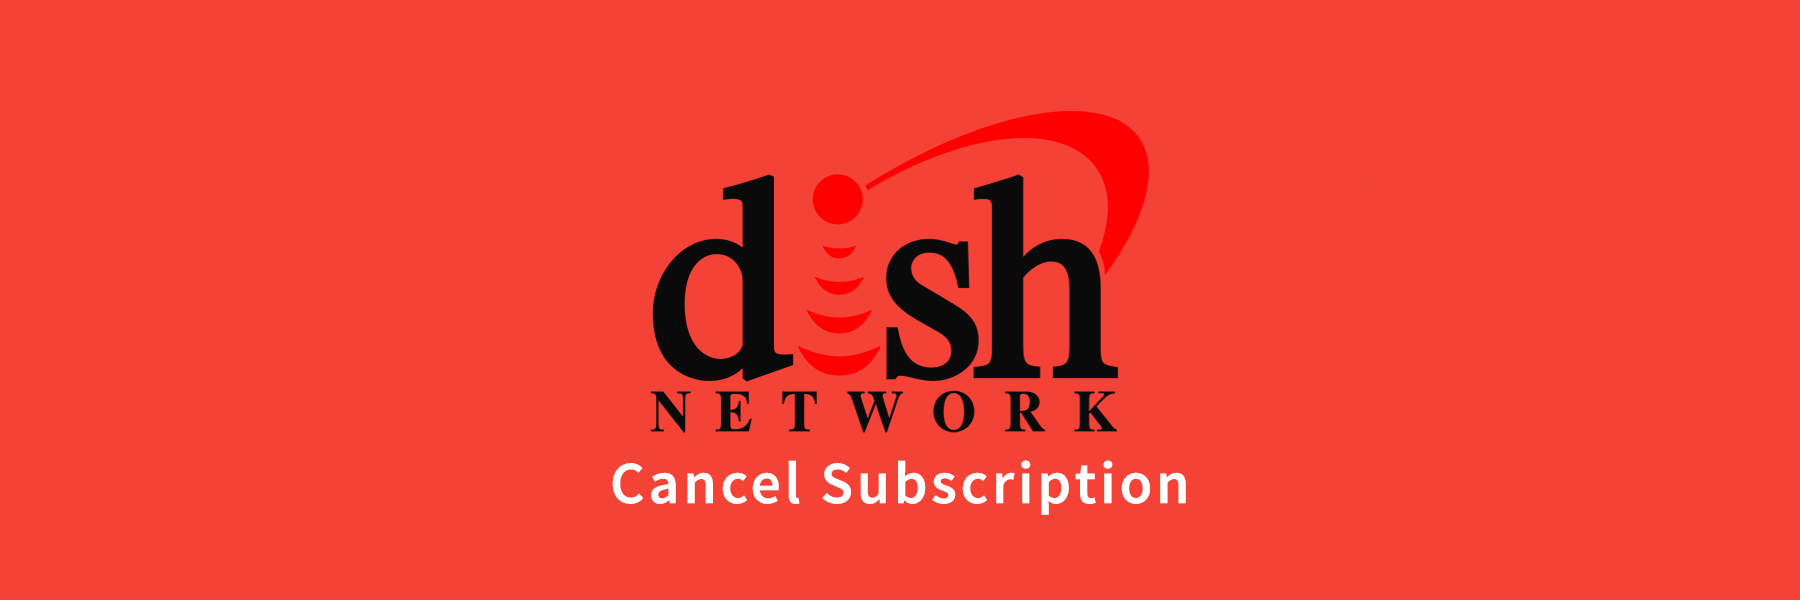 How To Cancel The Dish Network